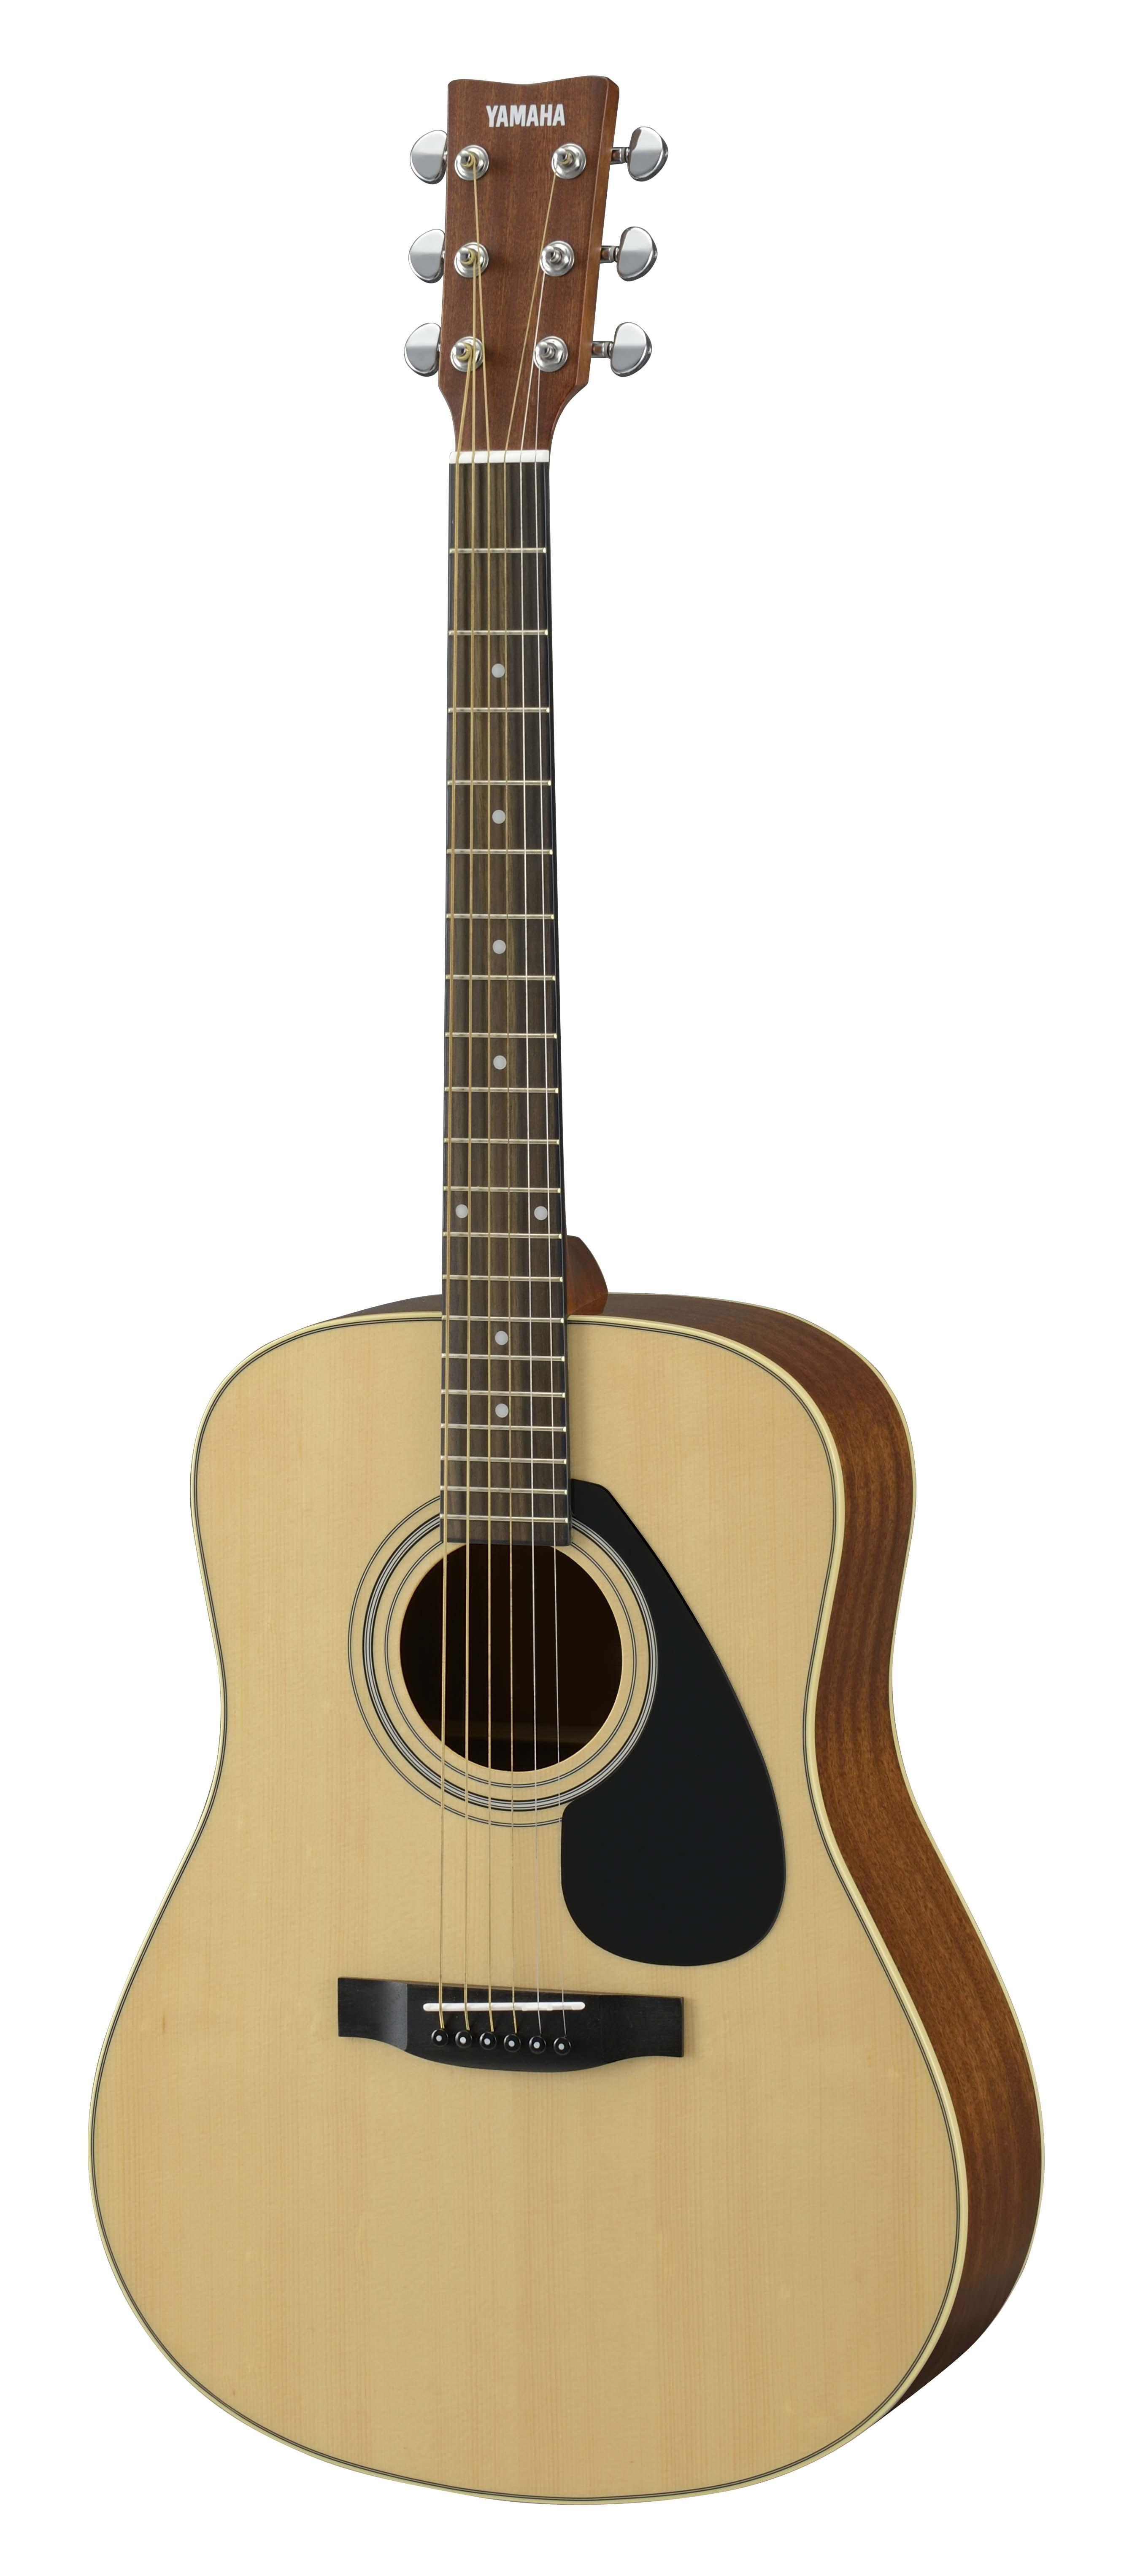 Yamaha f370dw acoustic guitar natural for Yamaha acoustic bass guitar